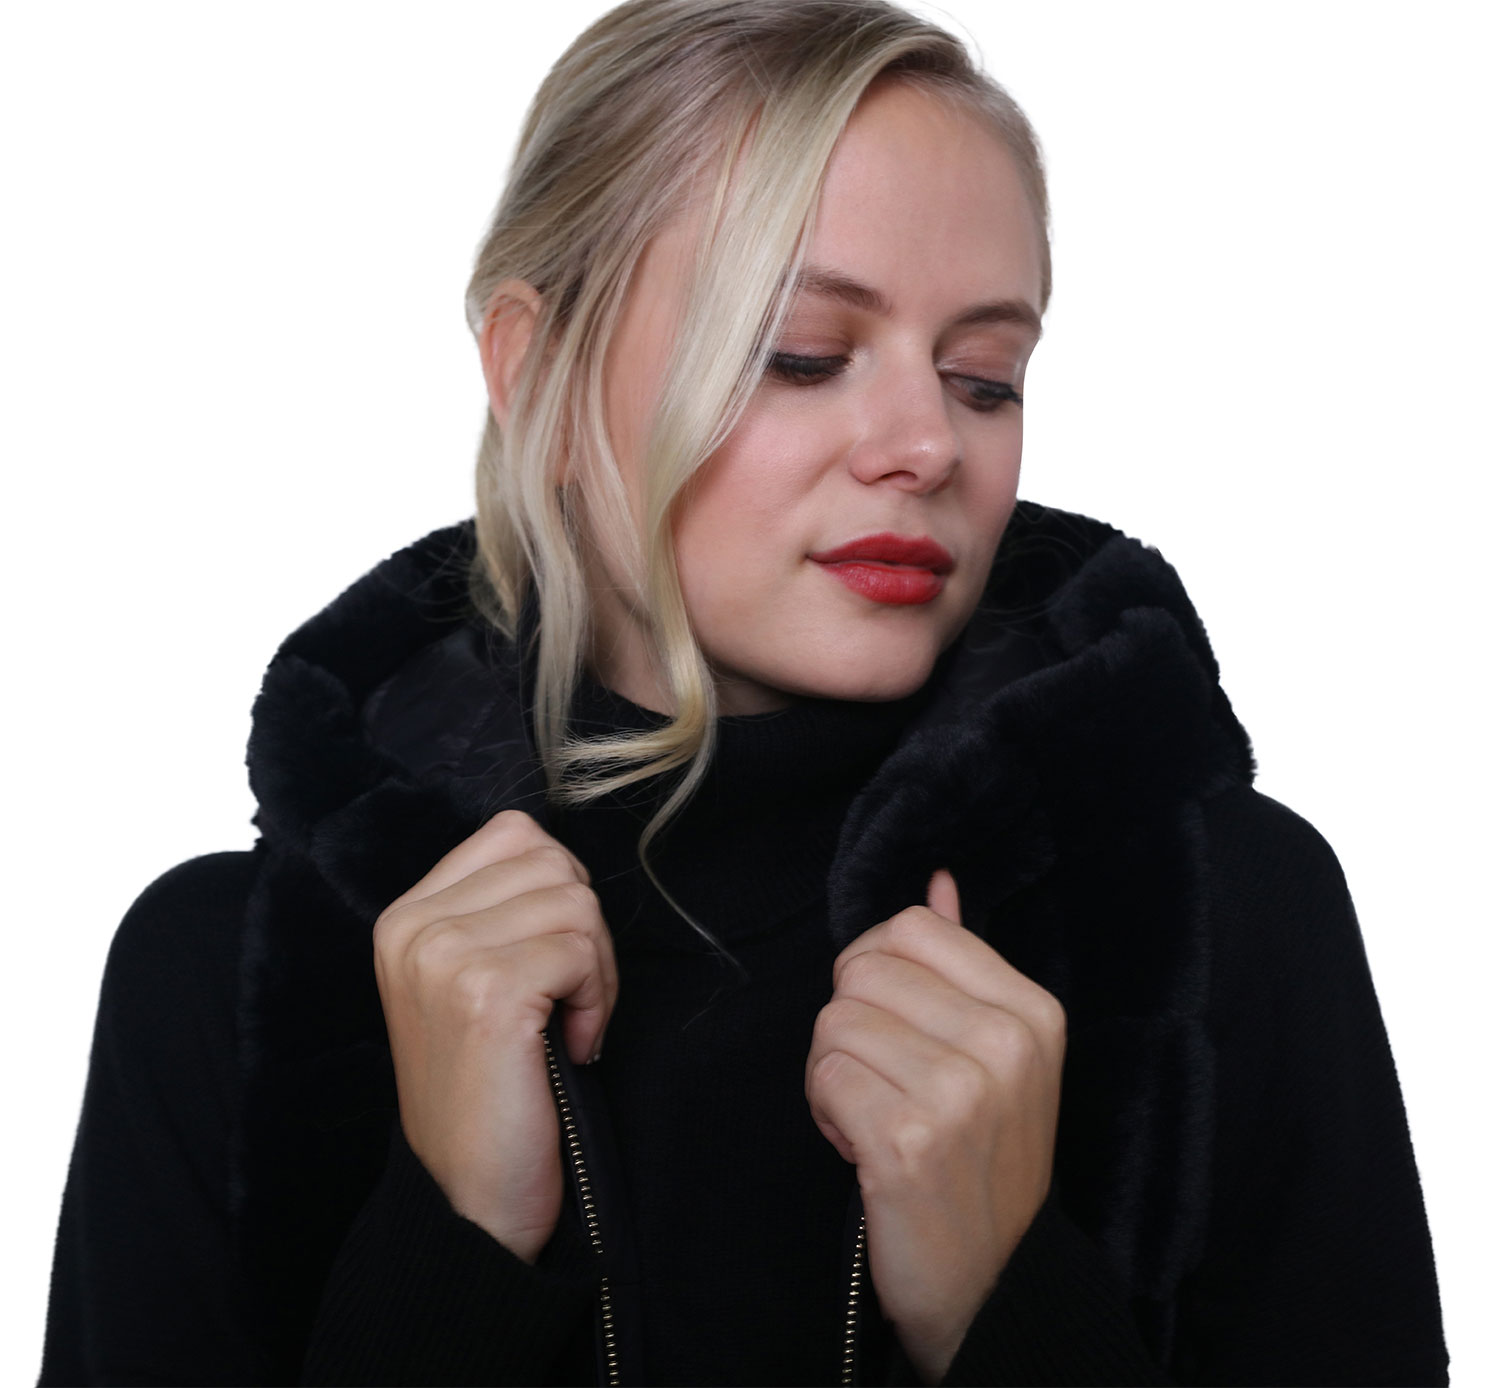 Alana Faux Fur Gilet from High Society